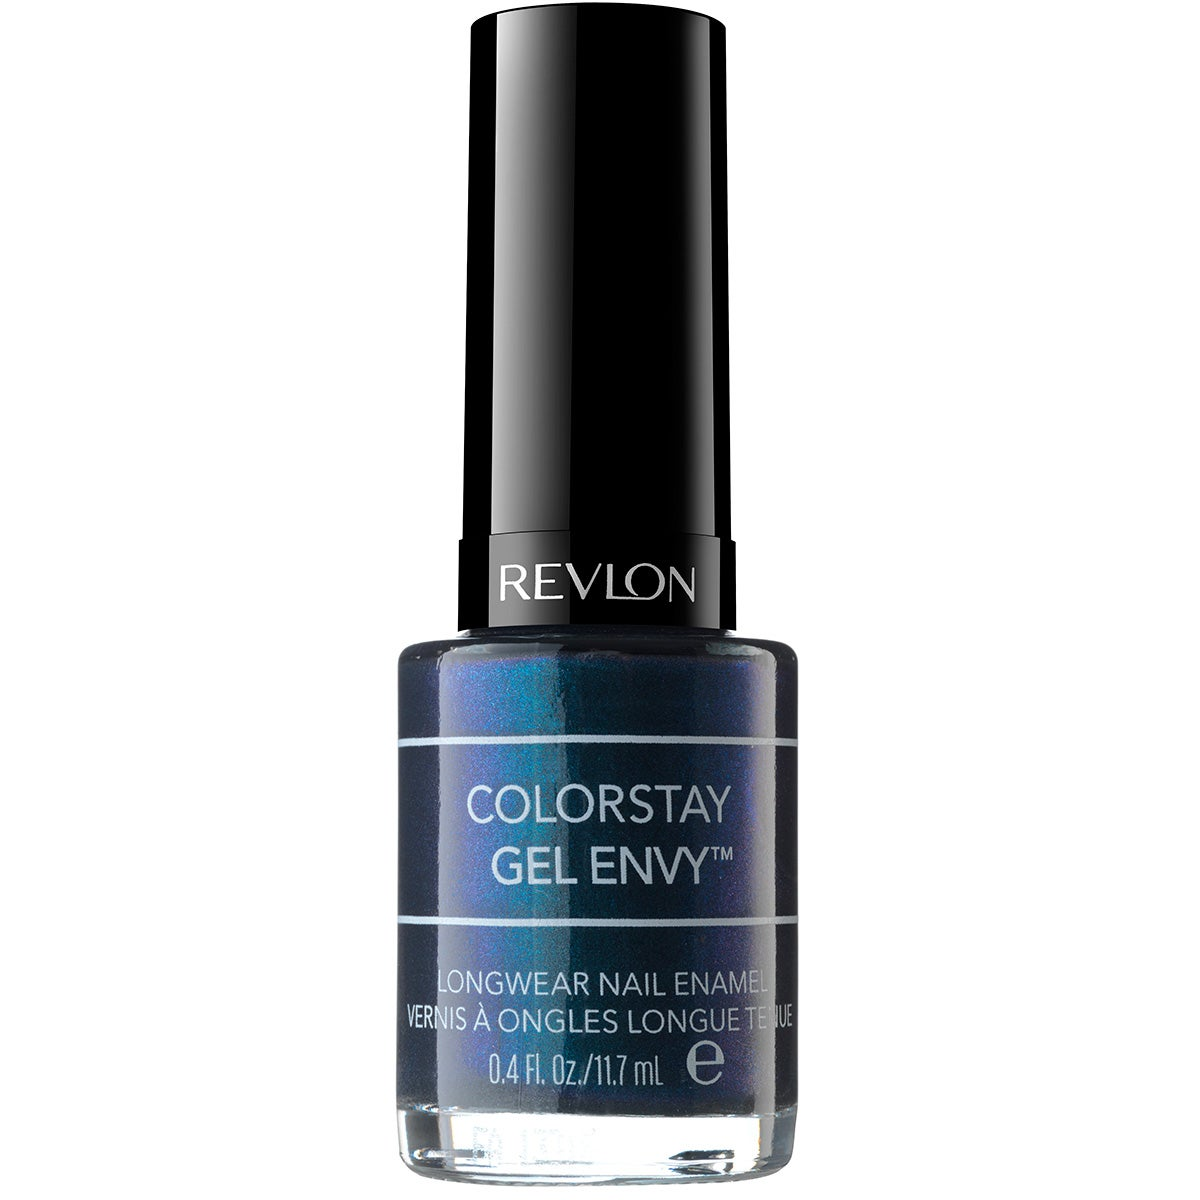 Revlon ColorStay Gel Envy Nail Enamel, All In